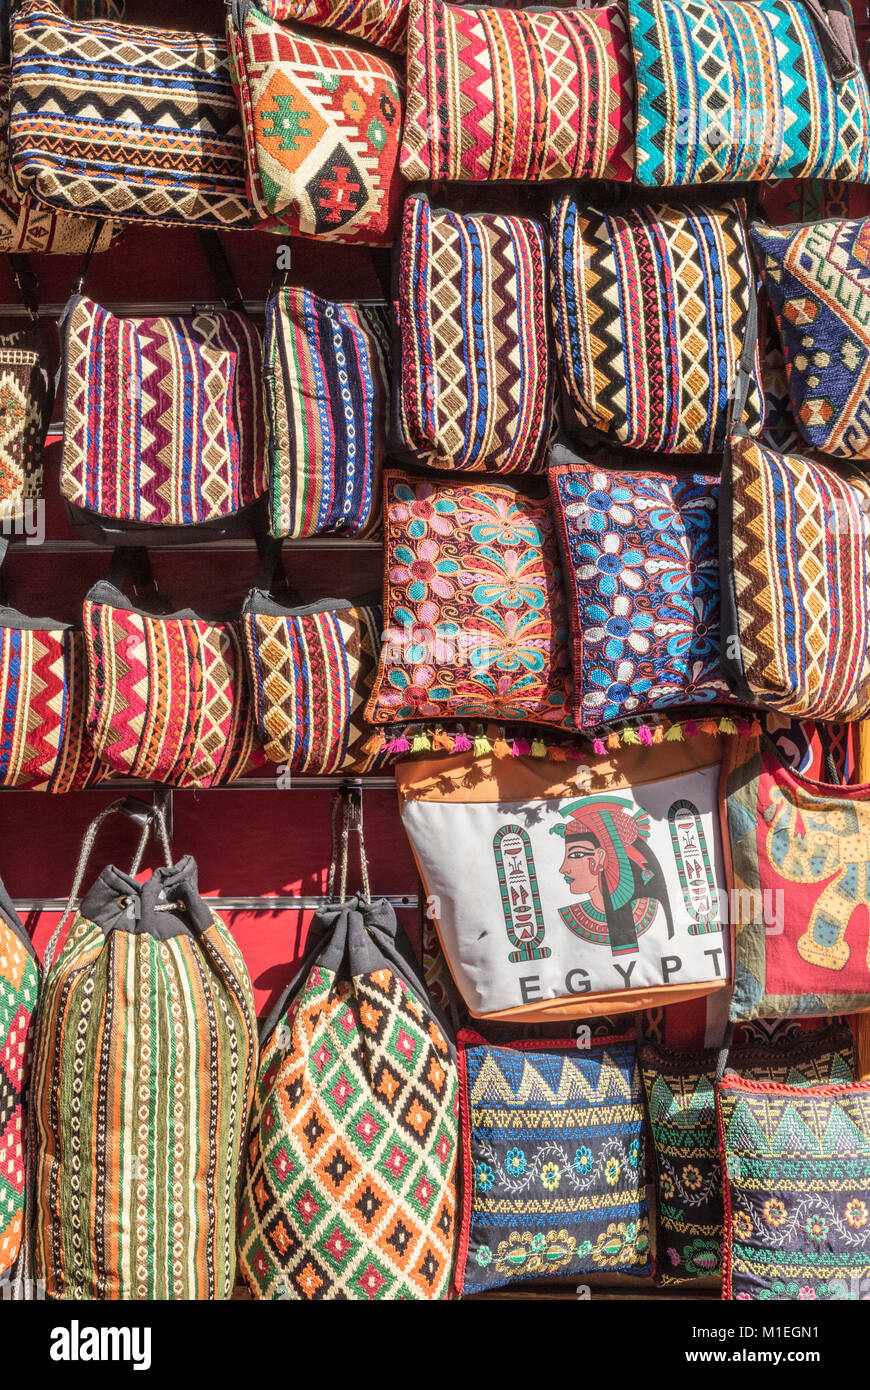 Brightly colored embroidered purses on sale at the souk, Aswan, Egypt - Stock Image